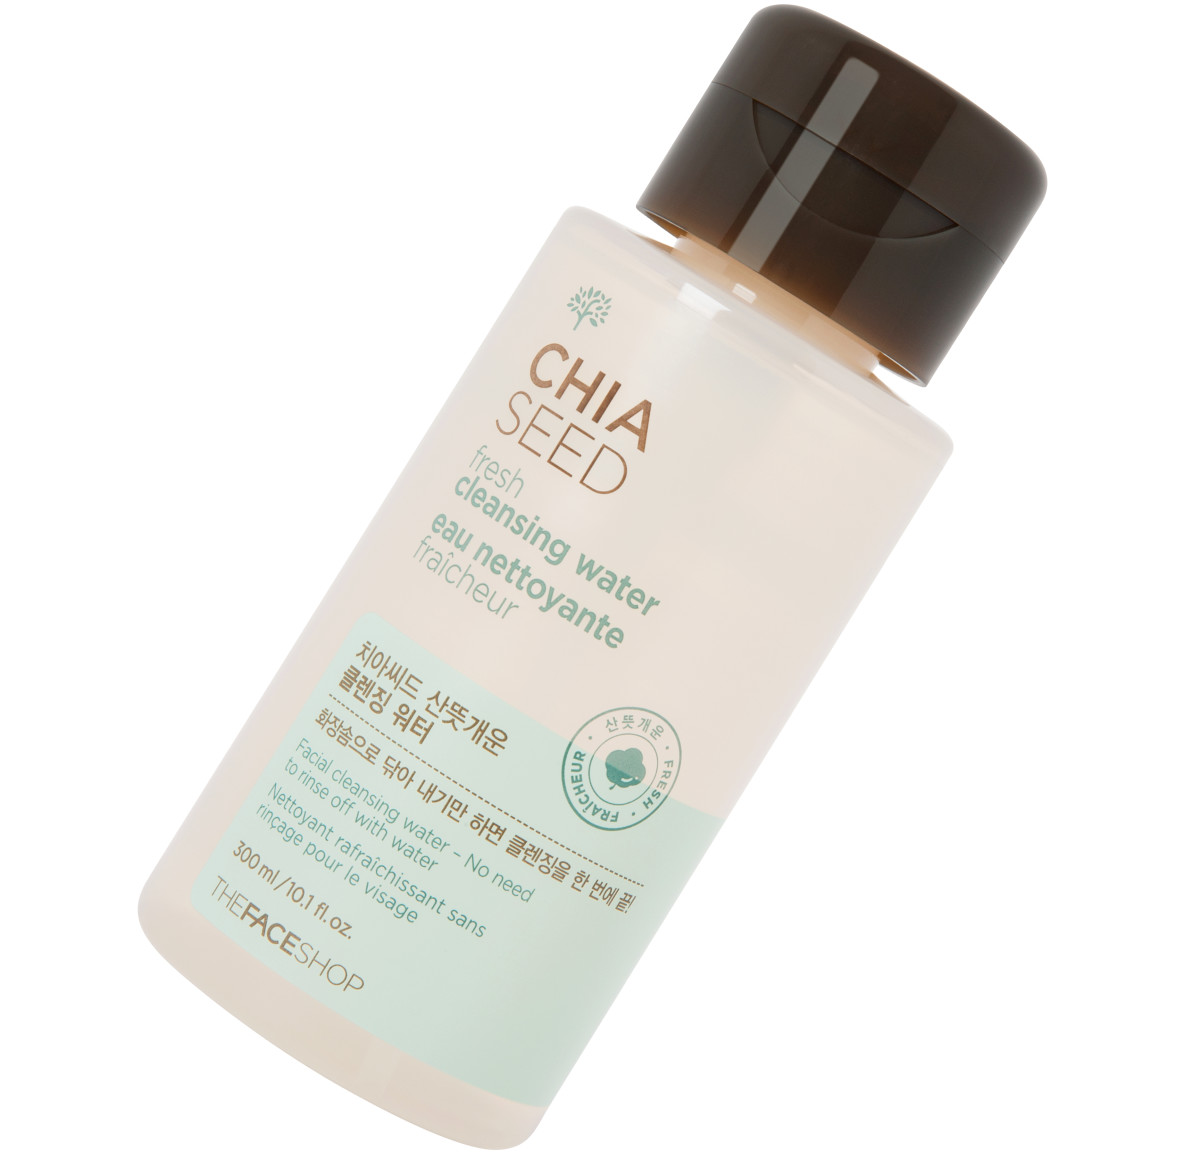 TheFaceShop Chia Seed Fresh Cleansing Water review: doesn't sting my eyes!